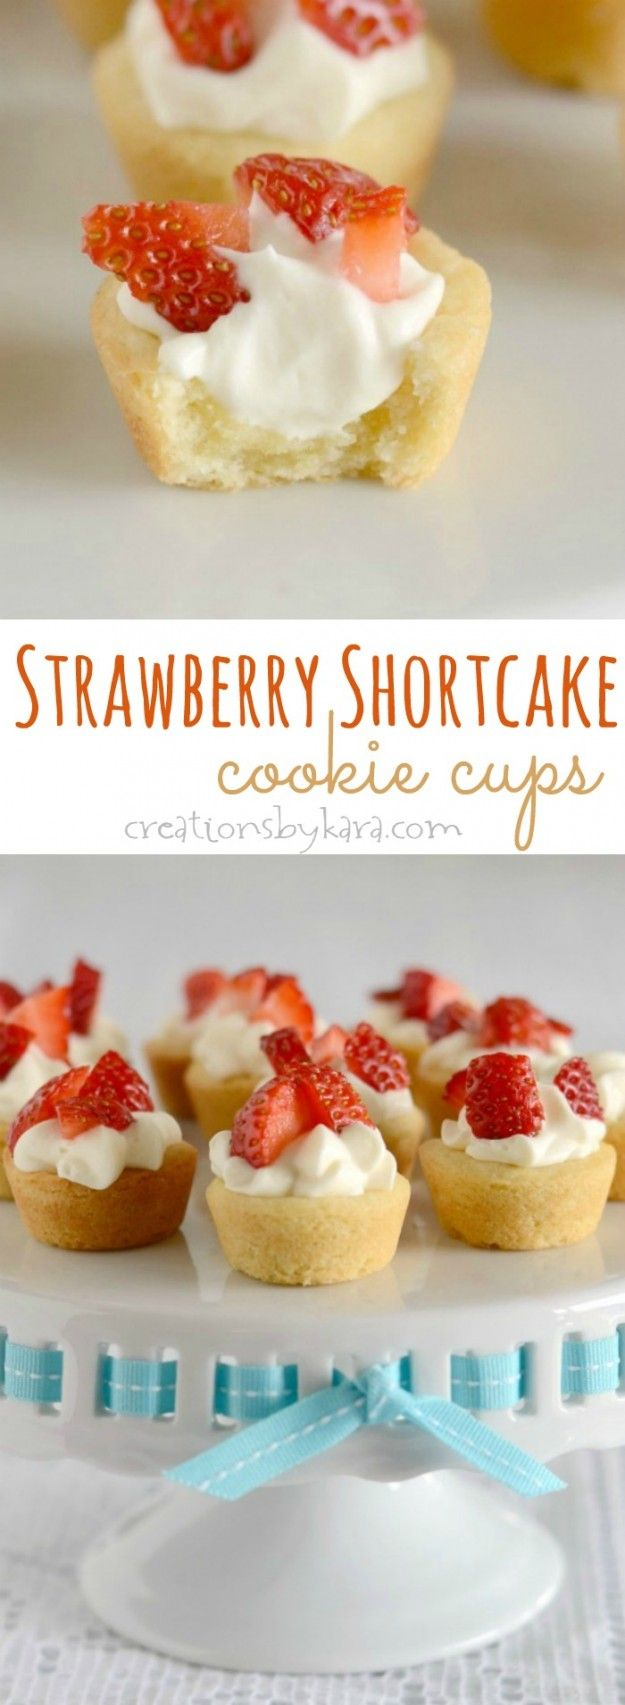 No one can resist these Strawberry Shortcake Cups. Such a fun way to serve strawberry shortcake!